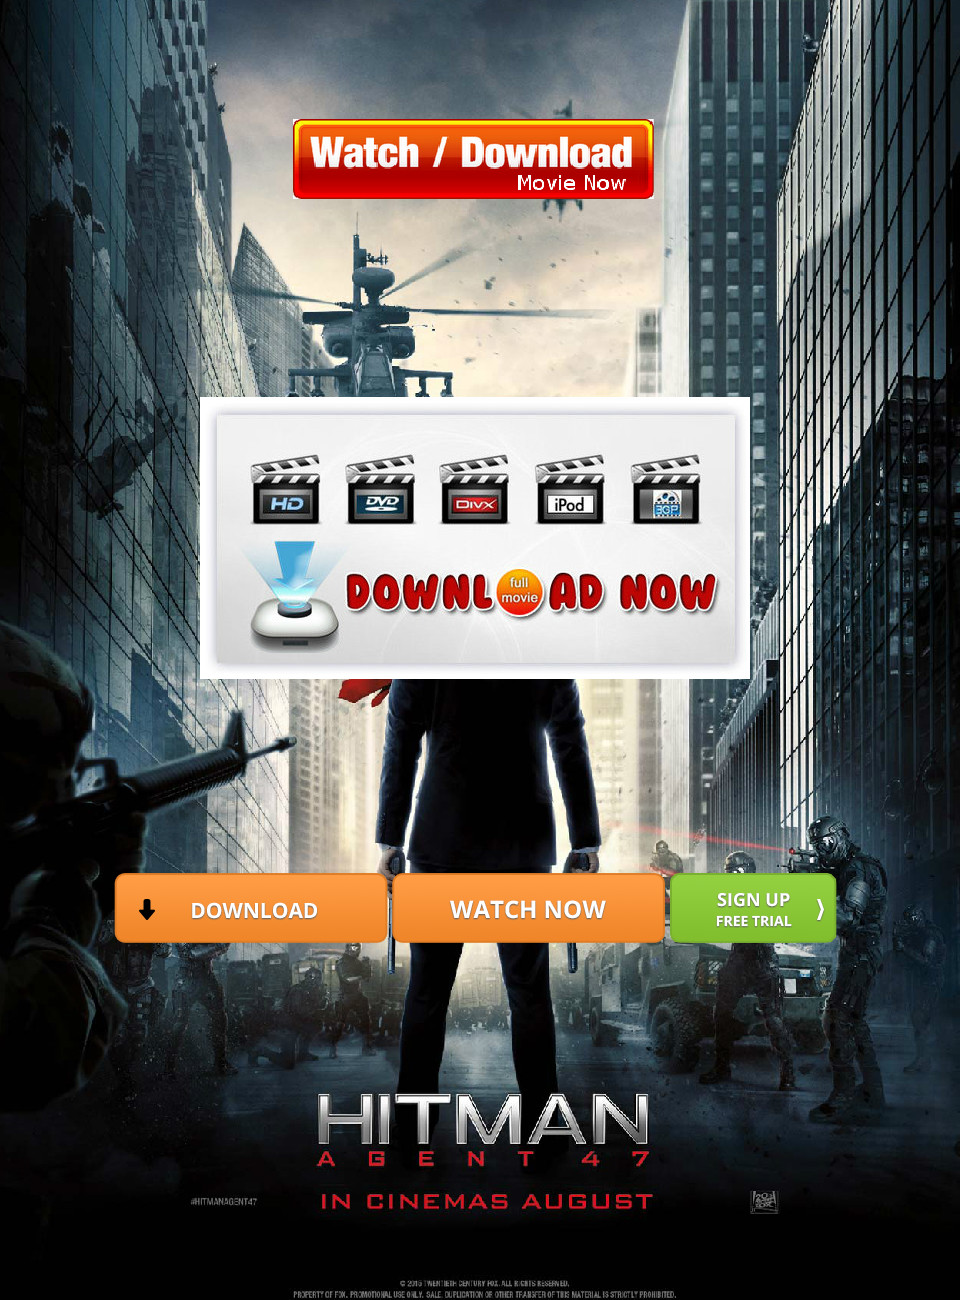 Download Hitman Agent 47 Movie Online Full In Hd Format 2015